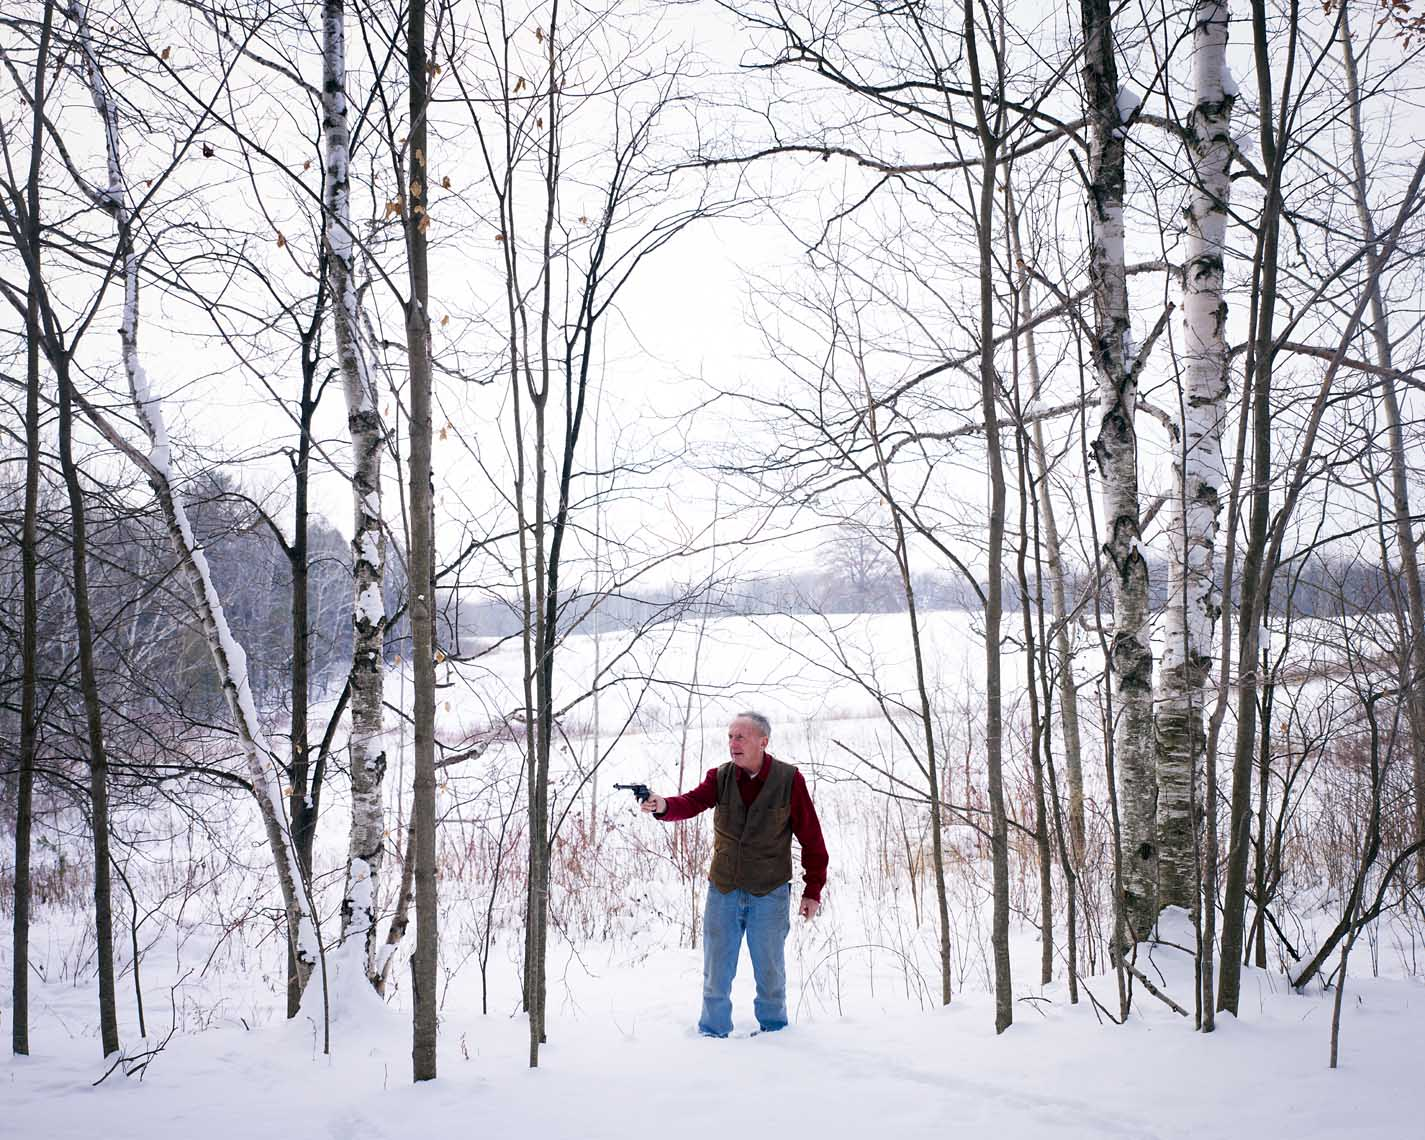 My dad with pistol in snowy wooded field portrait